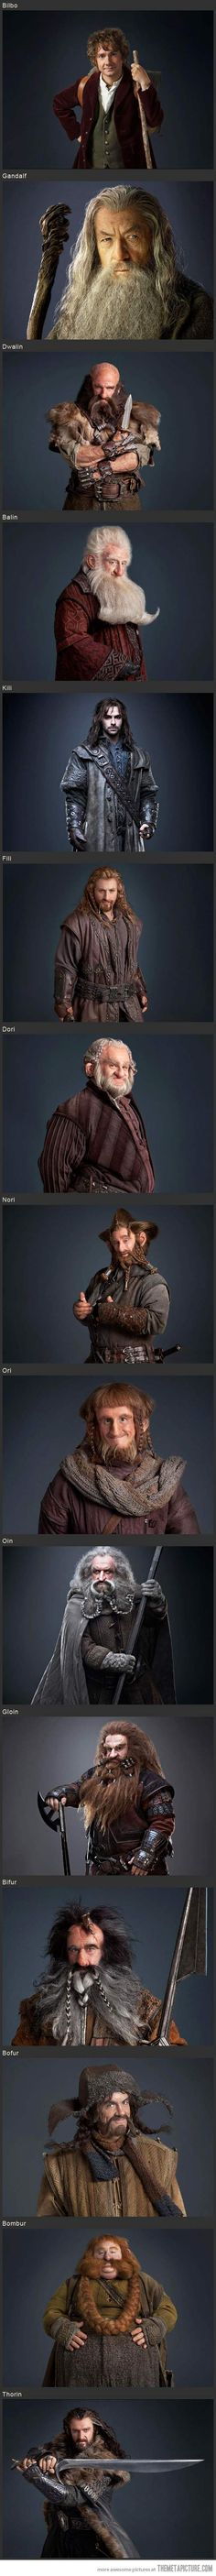 The Hobbit | isn't it great to see how your fantasy meets up the characters of the movie?